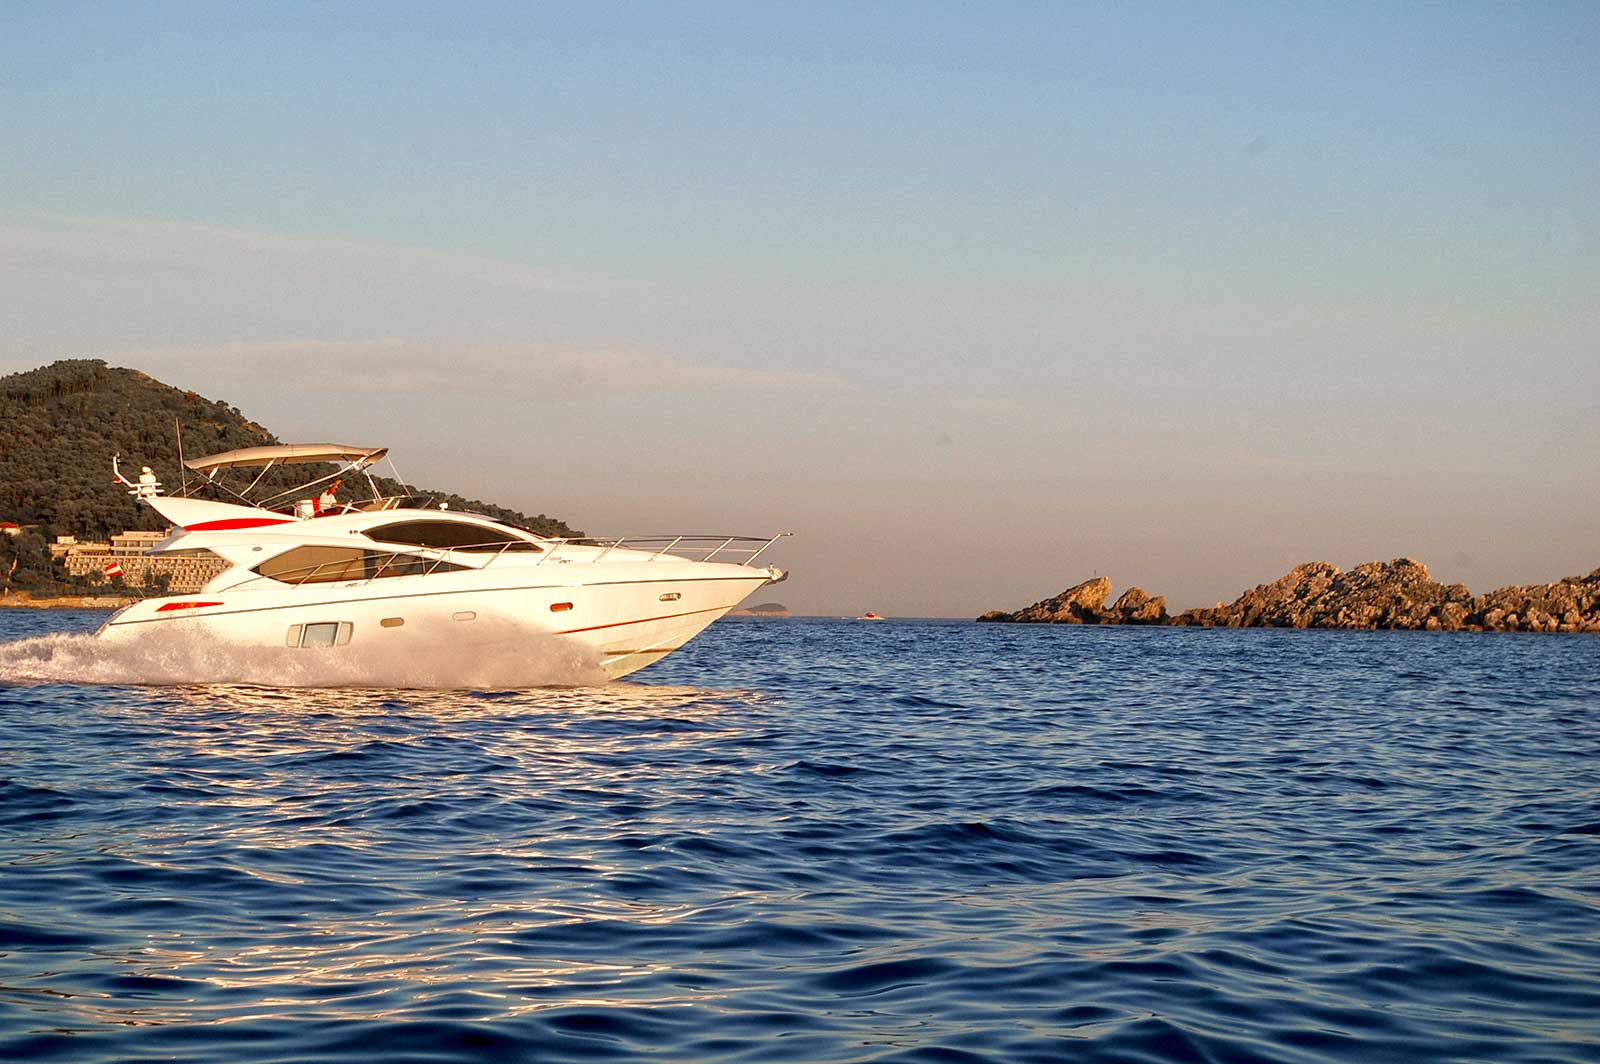 -images-excursions-elaphite-islands-speed-boat-excursion-a-sunseeker-charter-dubrovnik.jpg